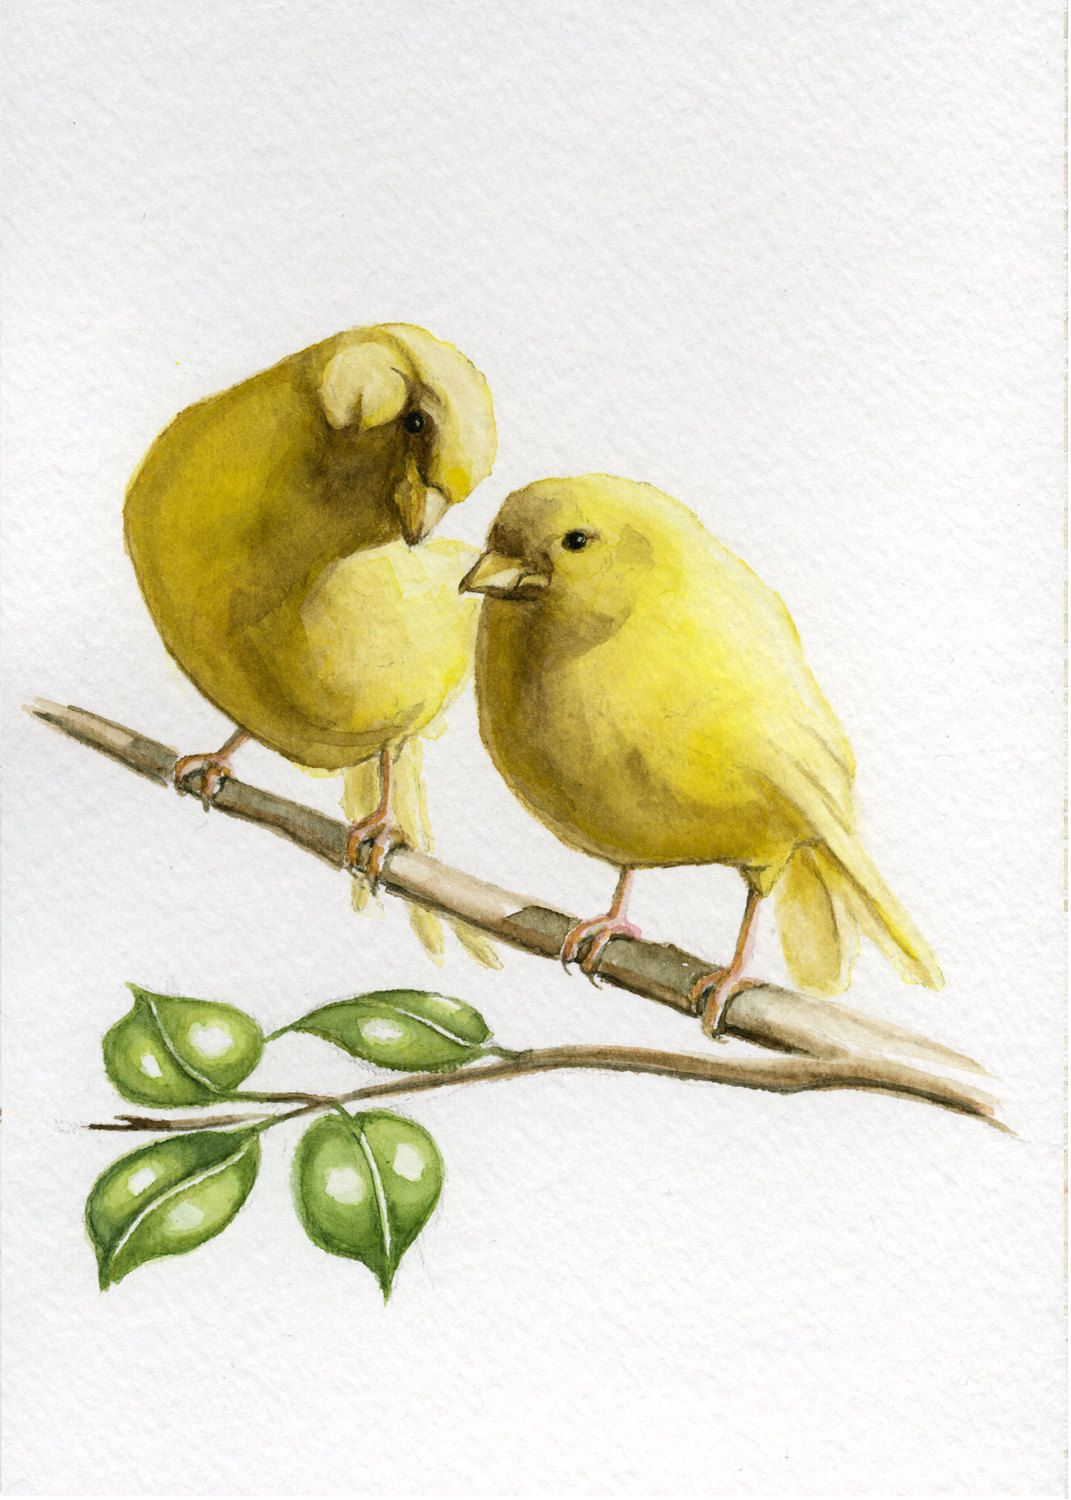 Yellow Canary Bird Painting 5x7 Prints From Original Watercolor